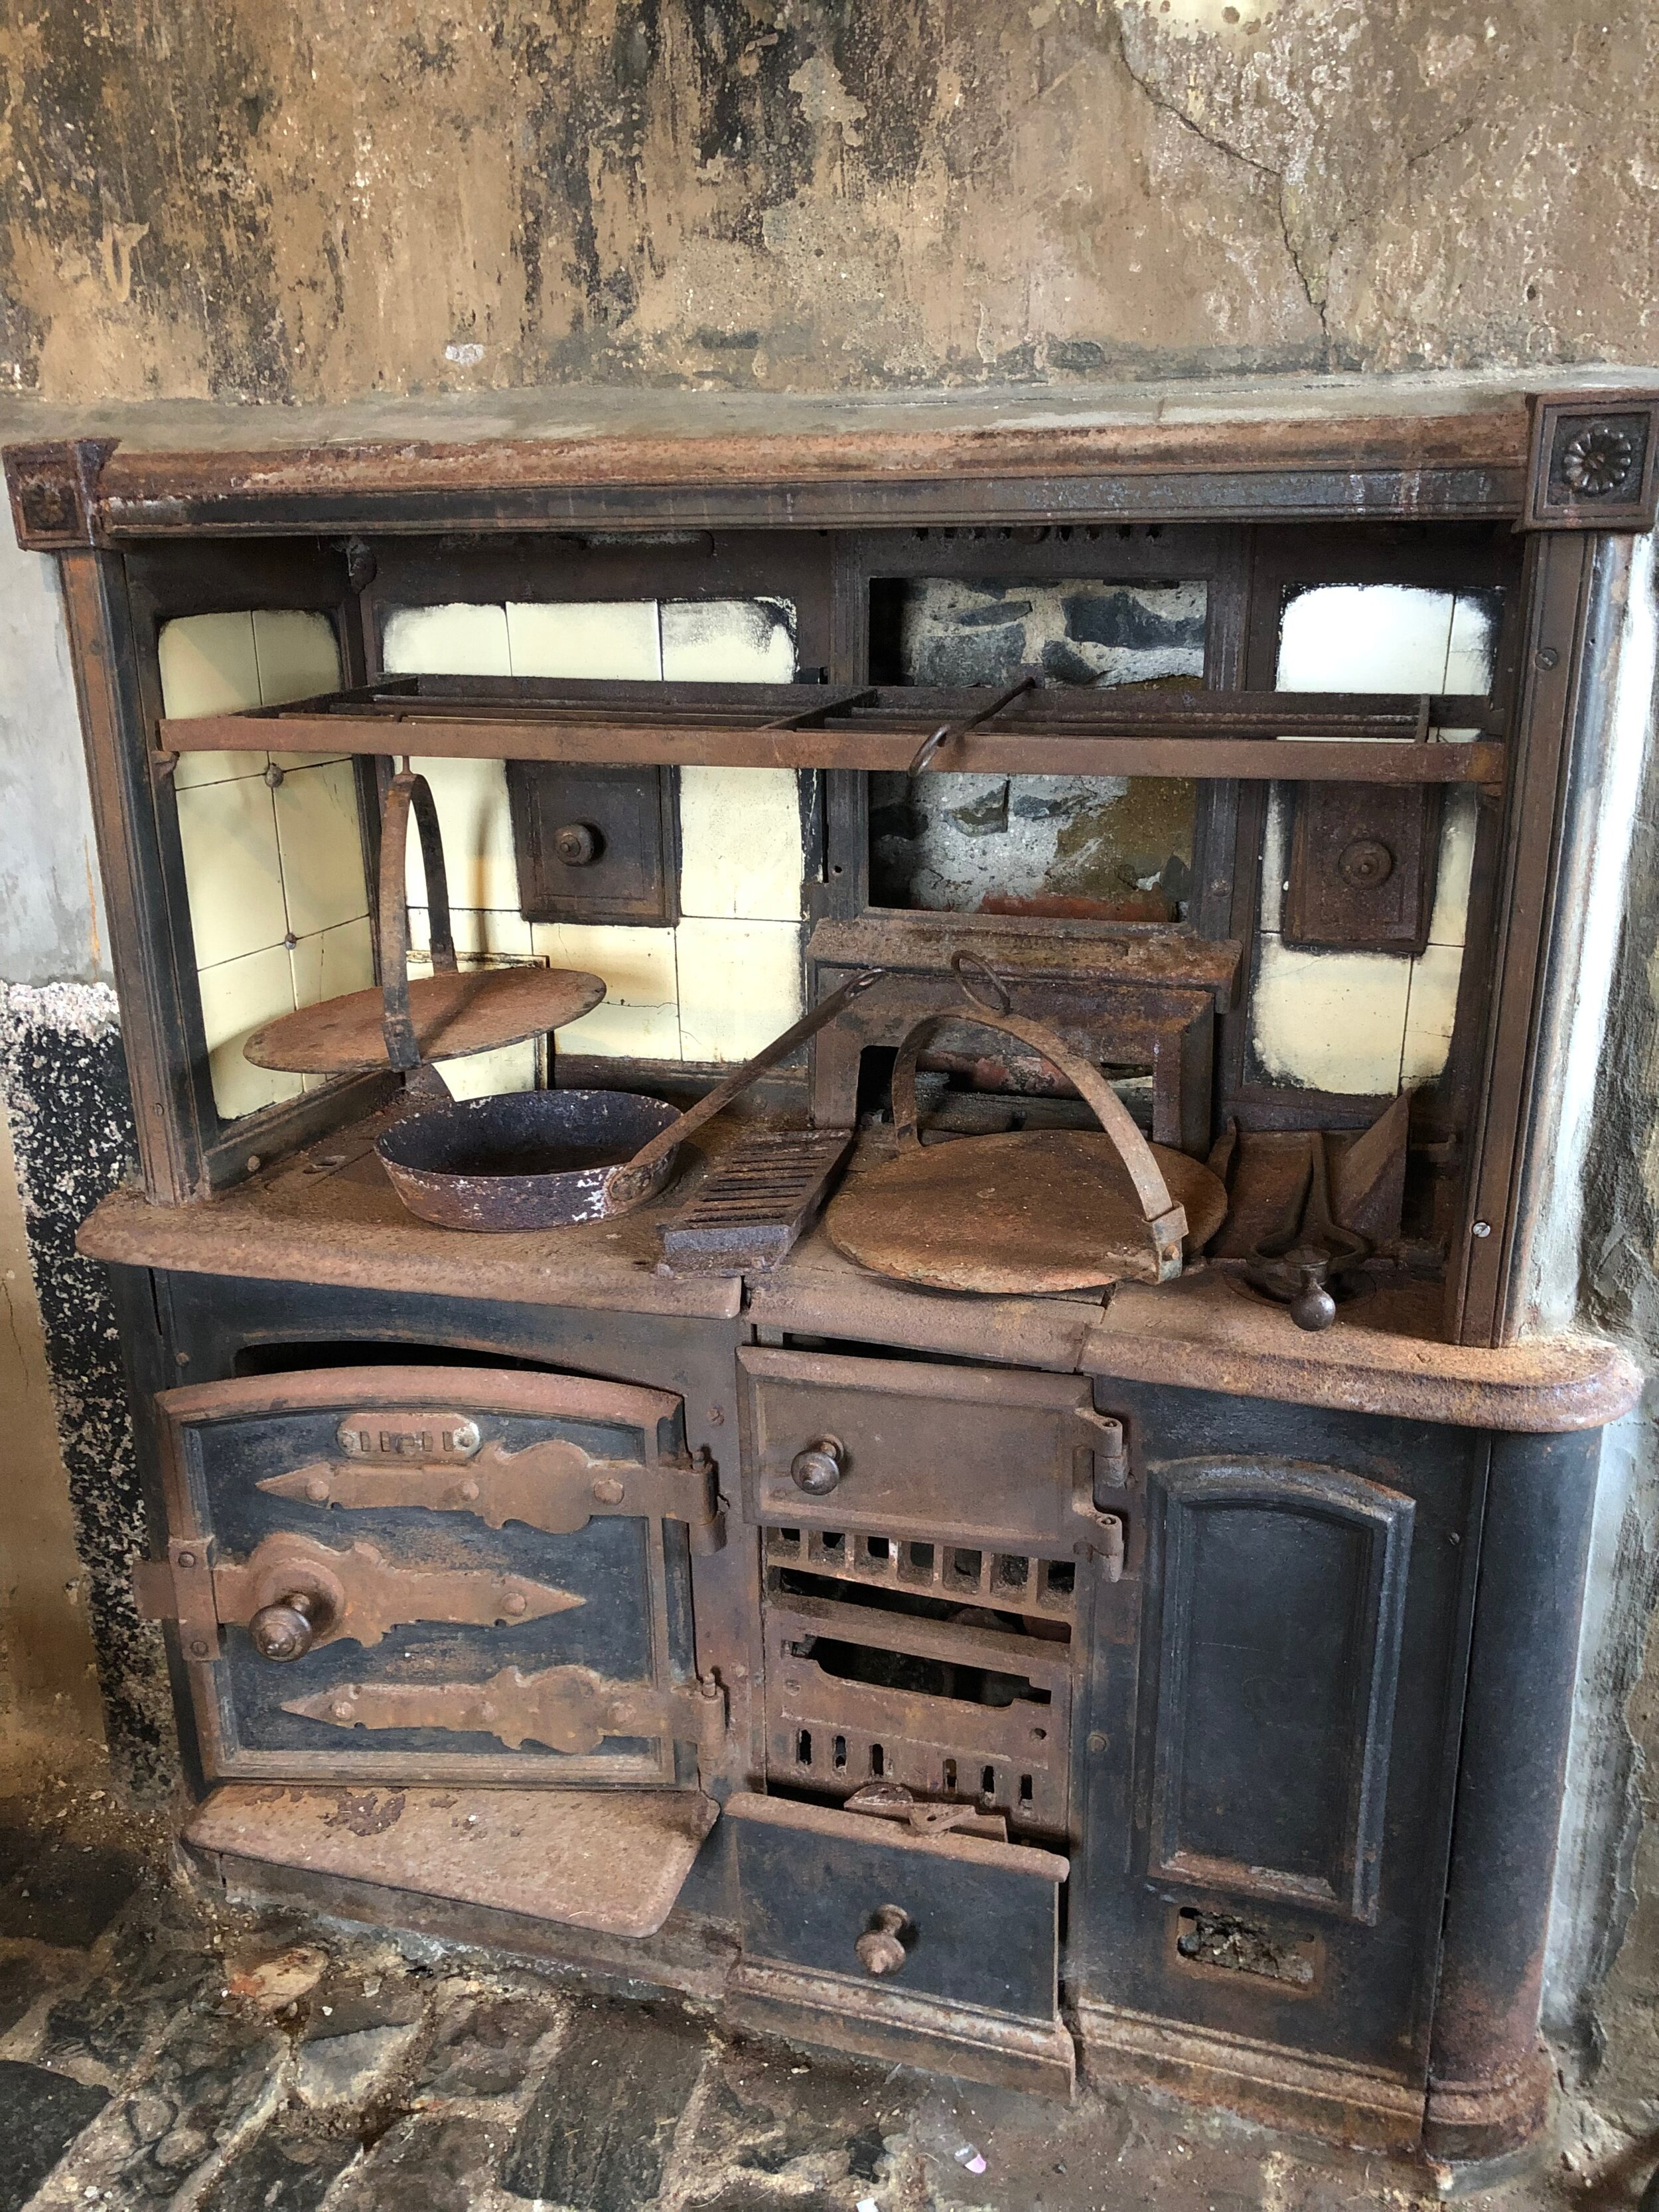 Finally would you be able to cook on this, I have seen a lot of cookers like this there was a large one in our first house but this was only about 2 metres wide and high. it was tiny.